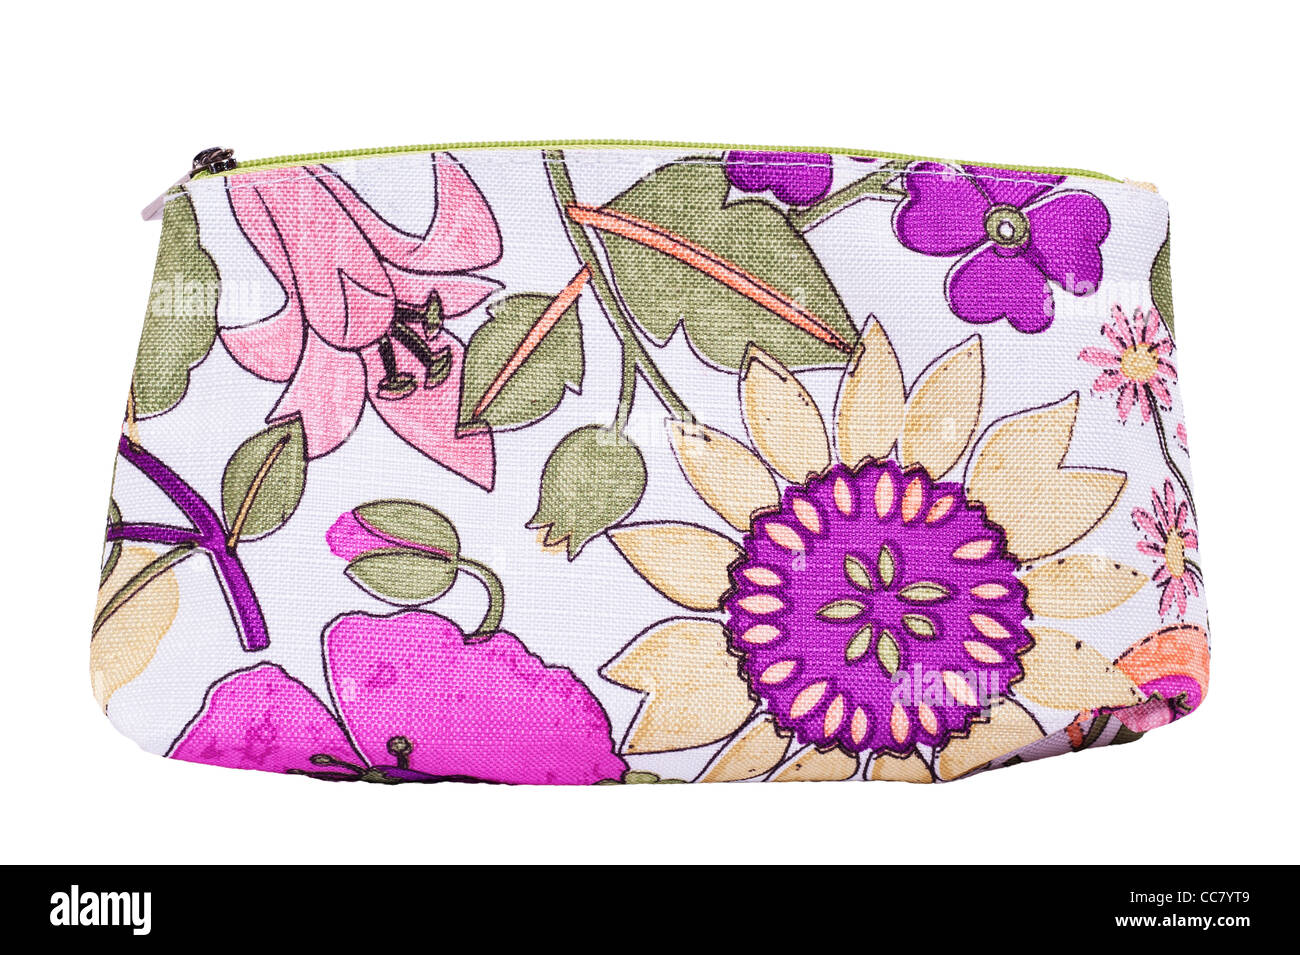 A Clinique makeup bag on a white background - Stock Image